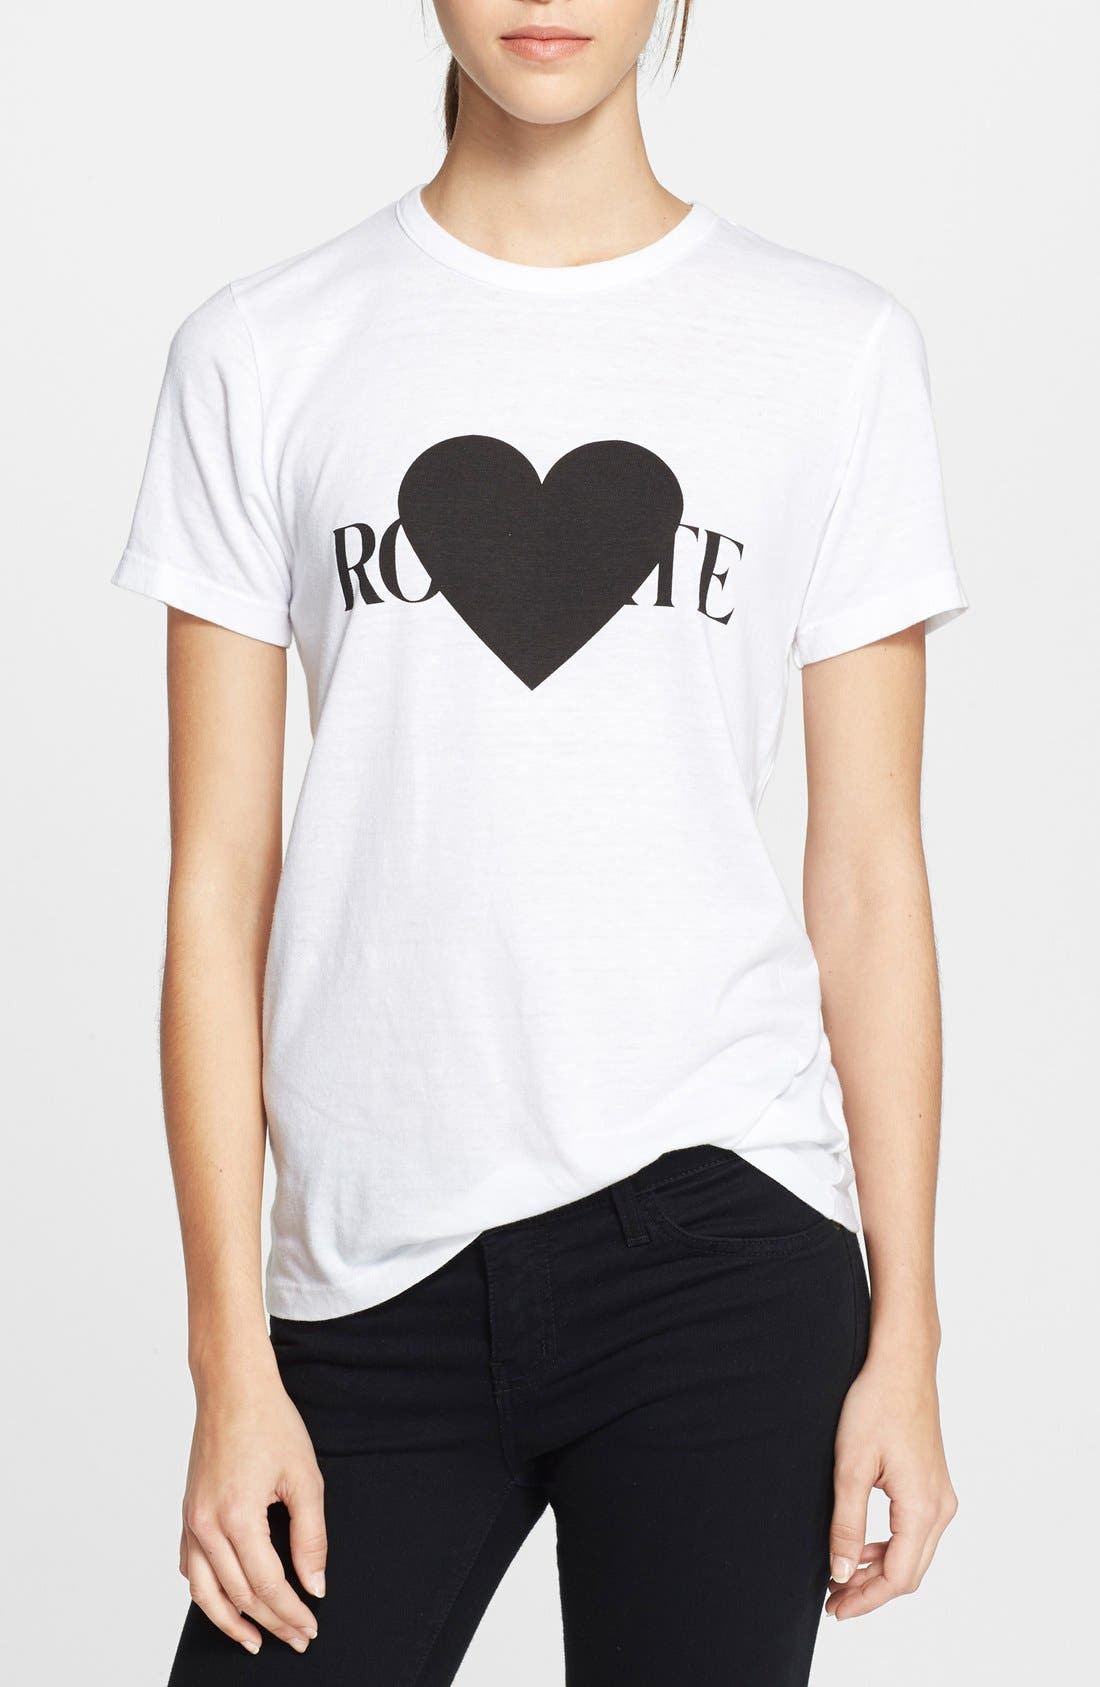 Alternate Image 1 Selected - Rodarte 'Rohearte' Heart Graphic Tee